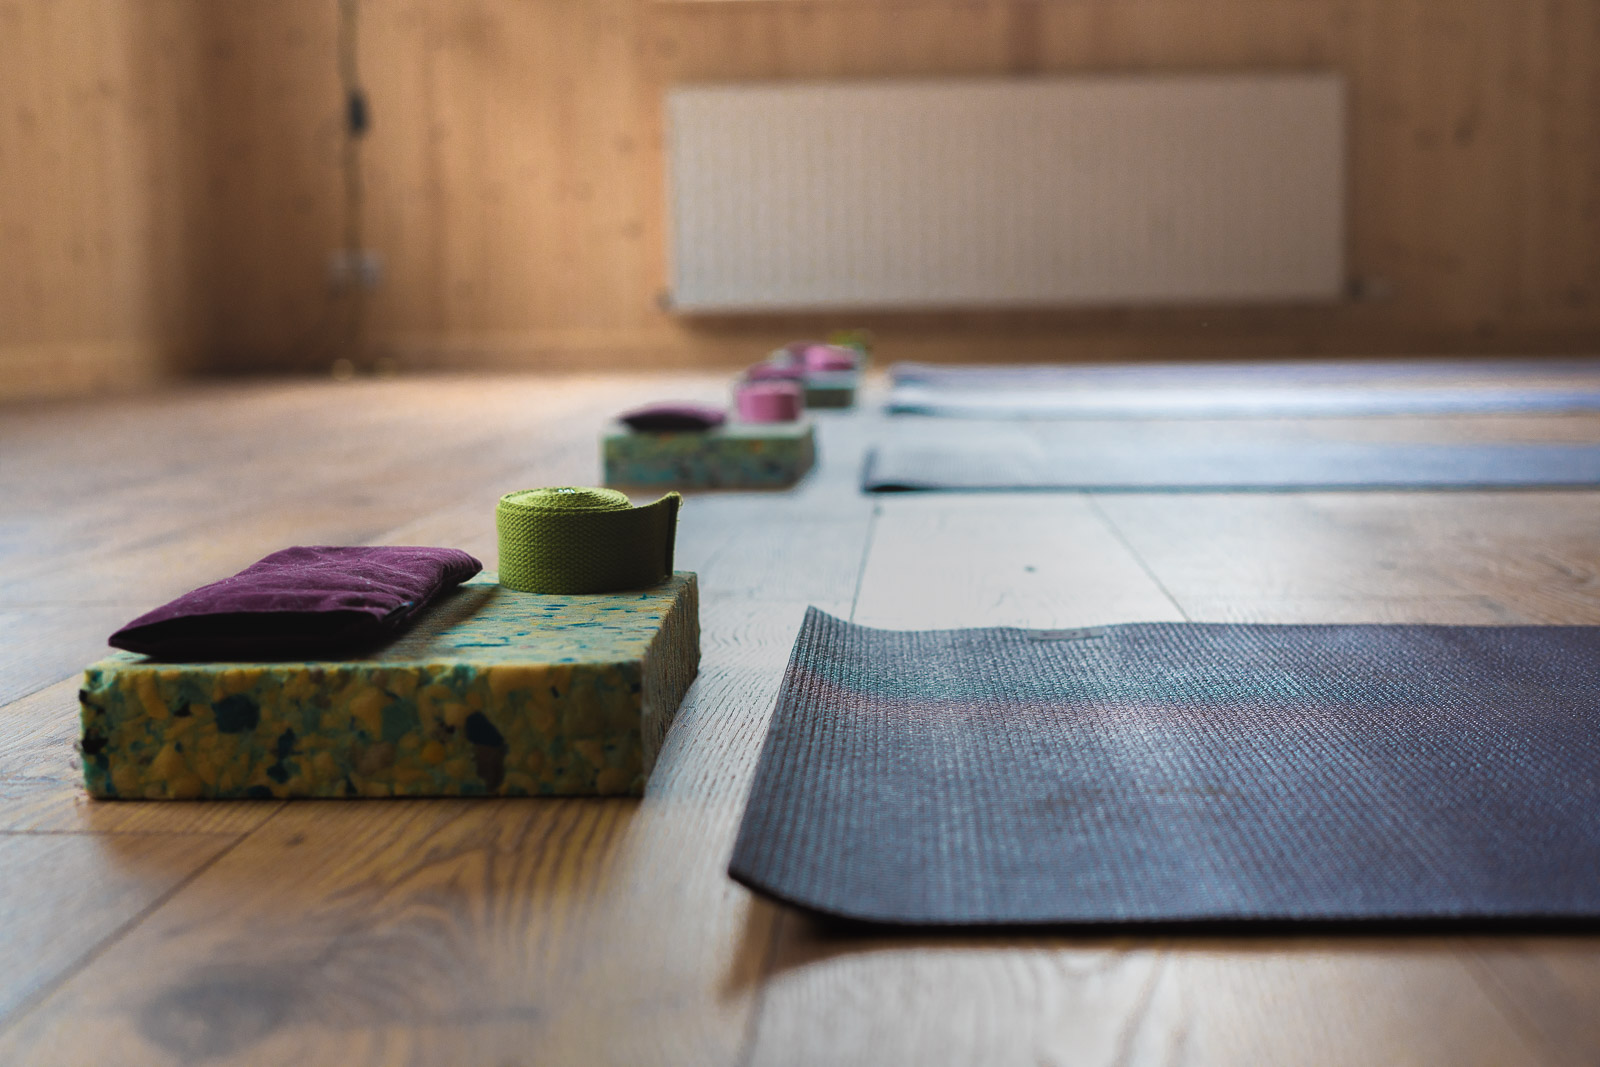 Yoga mats laid out in the Yogandspice Studio.